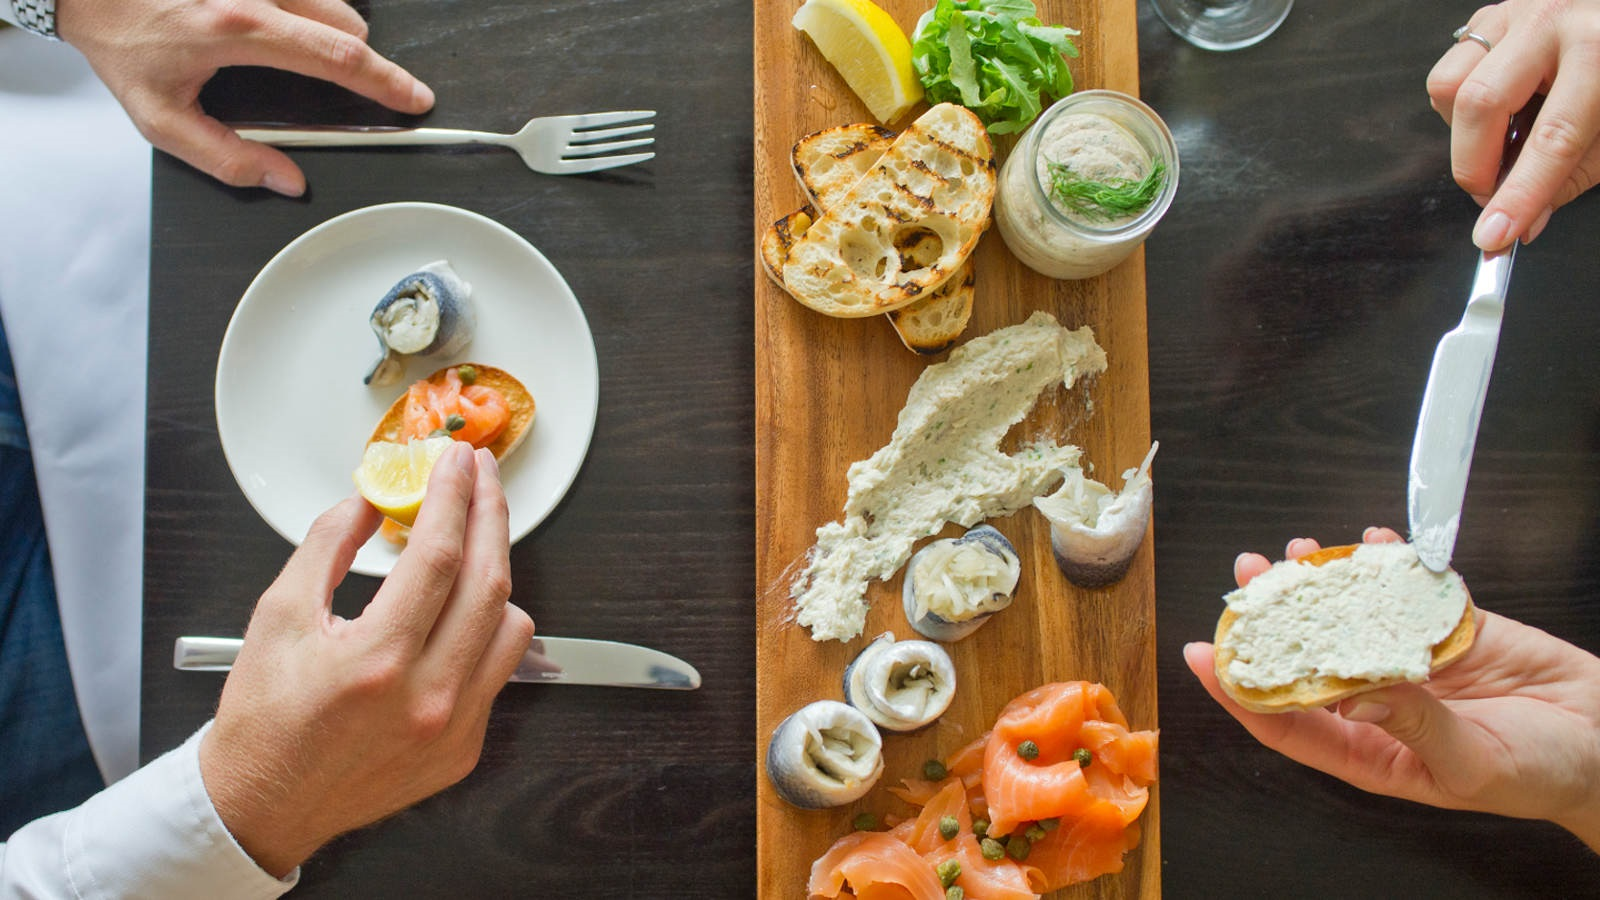 Reserve a table at Docksider Neighbourhood Kitchen & Grill